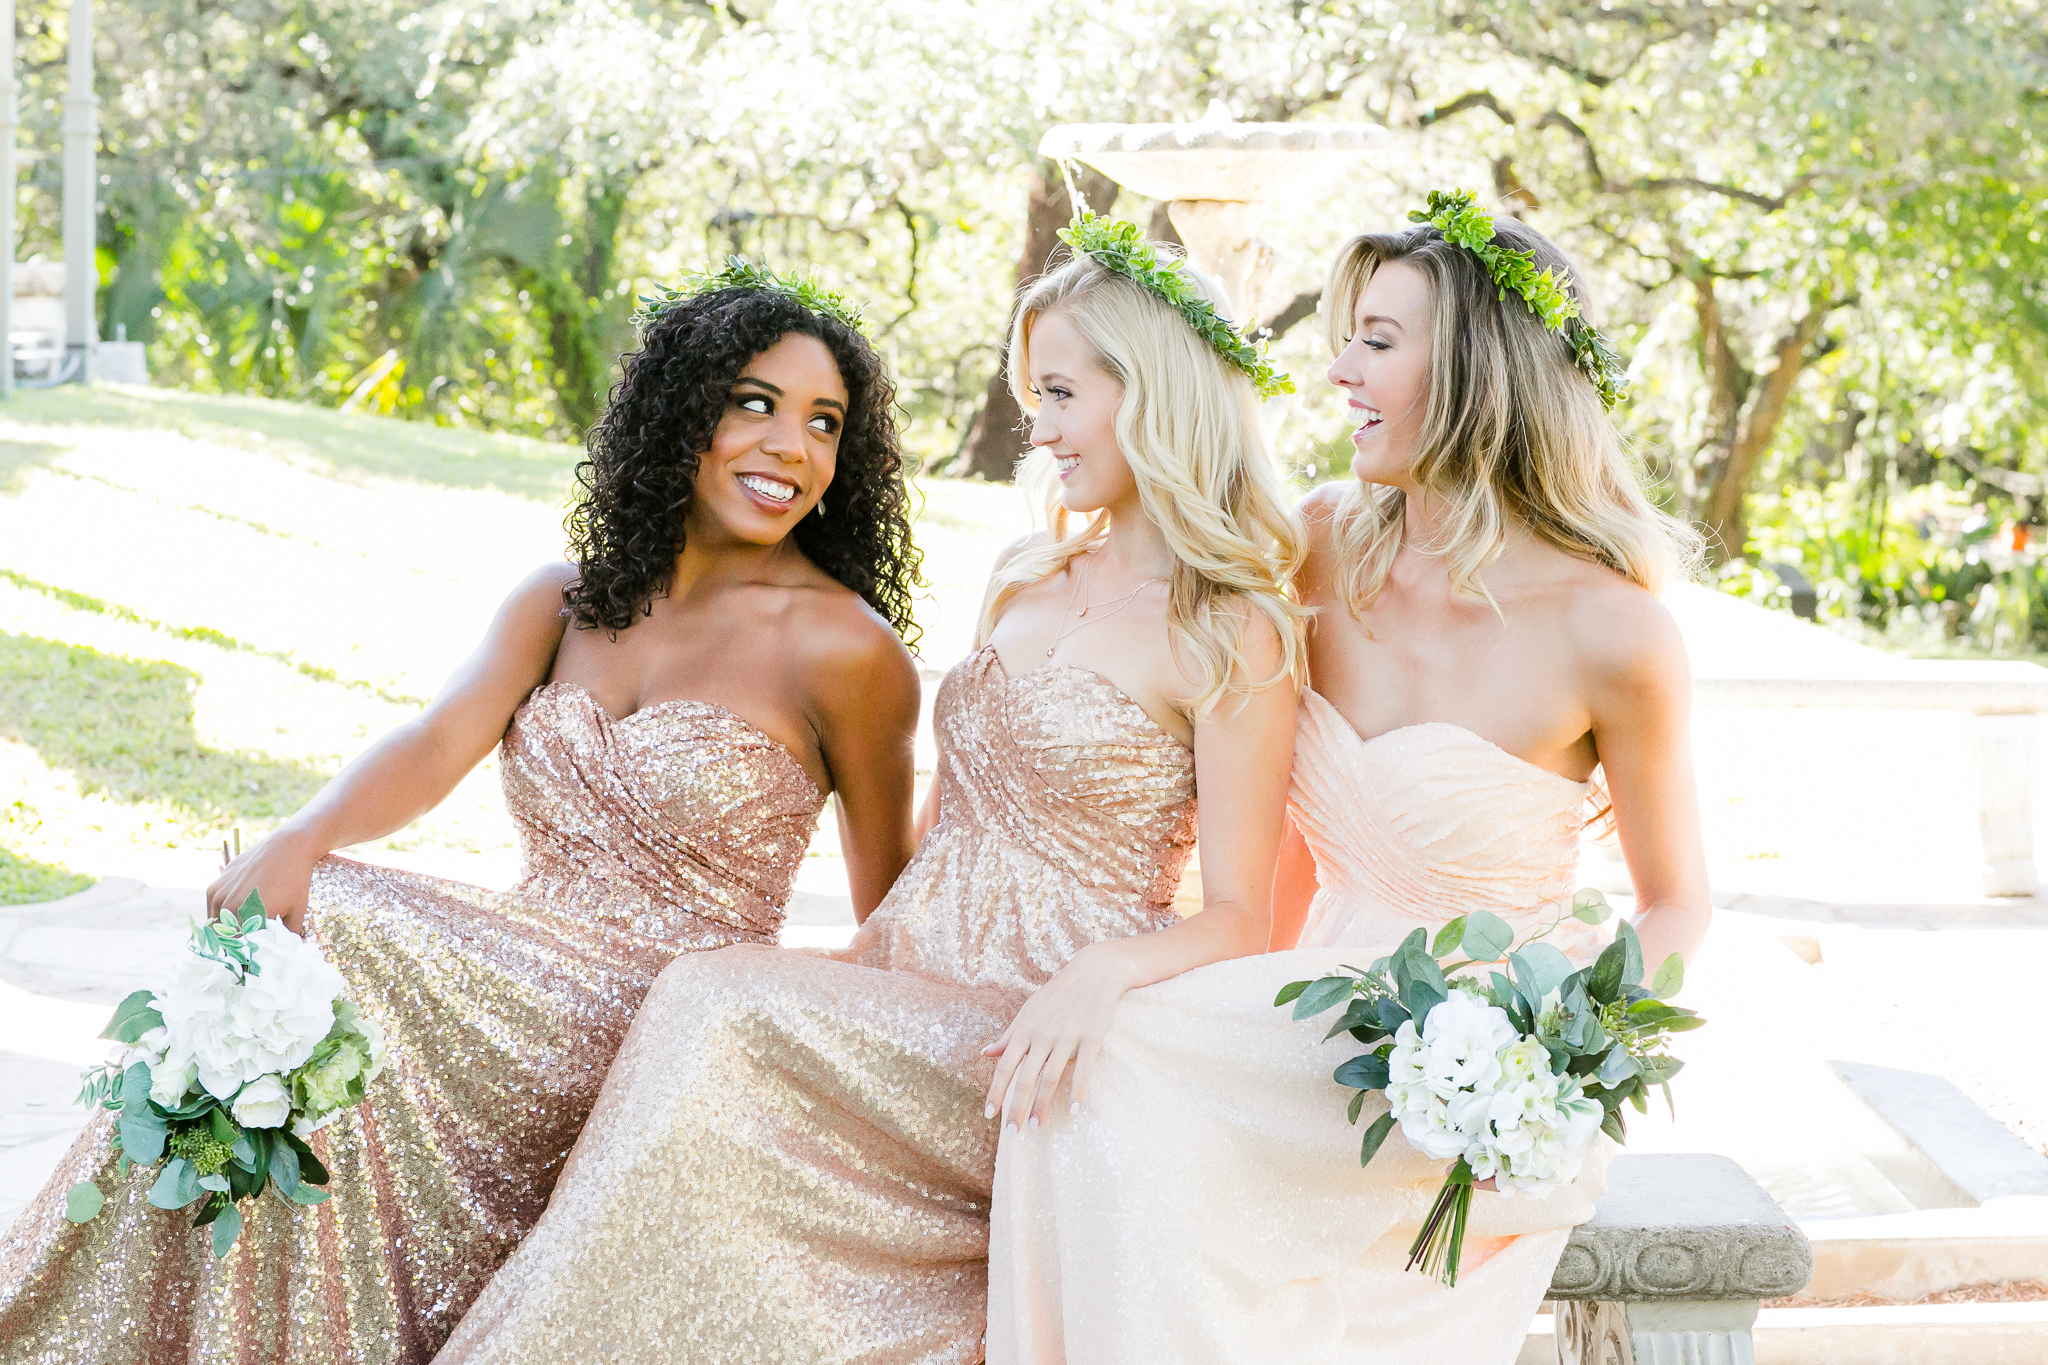 three sleeveless rouched celeste sequin gowns each in a different color. Rose gold, matte rose gold, and barely blush sequin dresses match perfectly with outdoor ceremony setting.